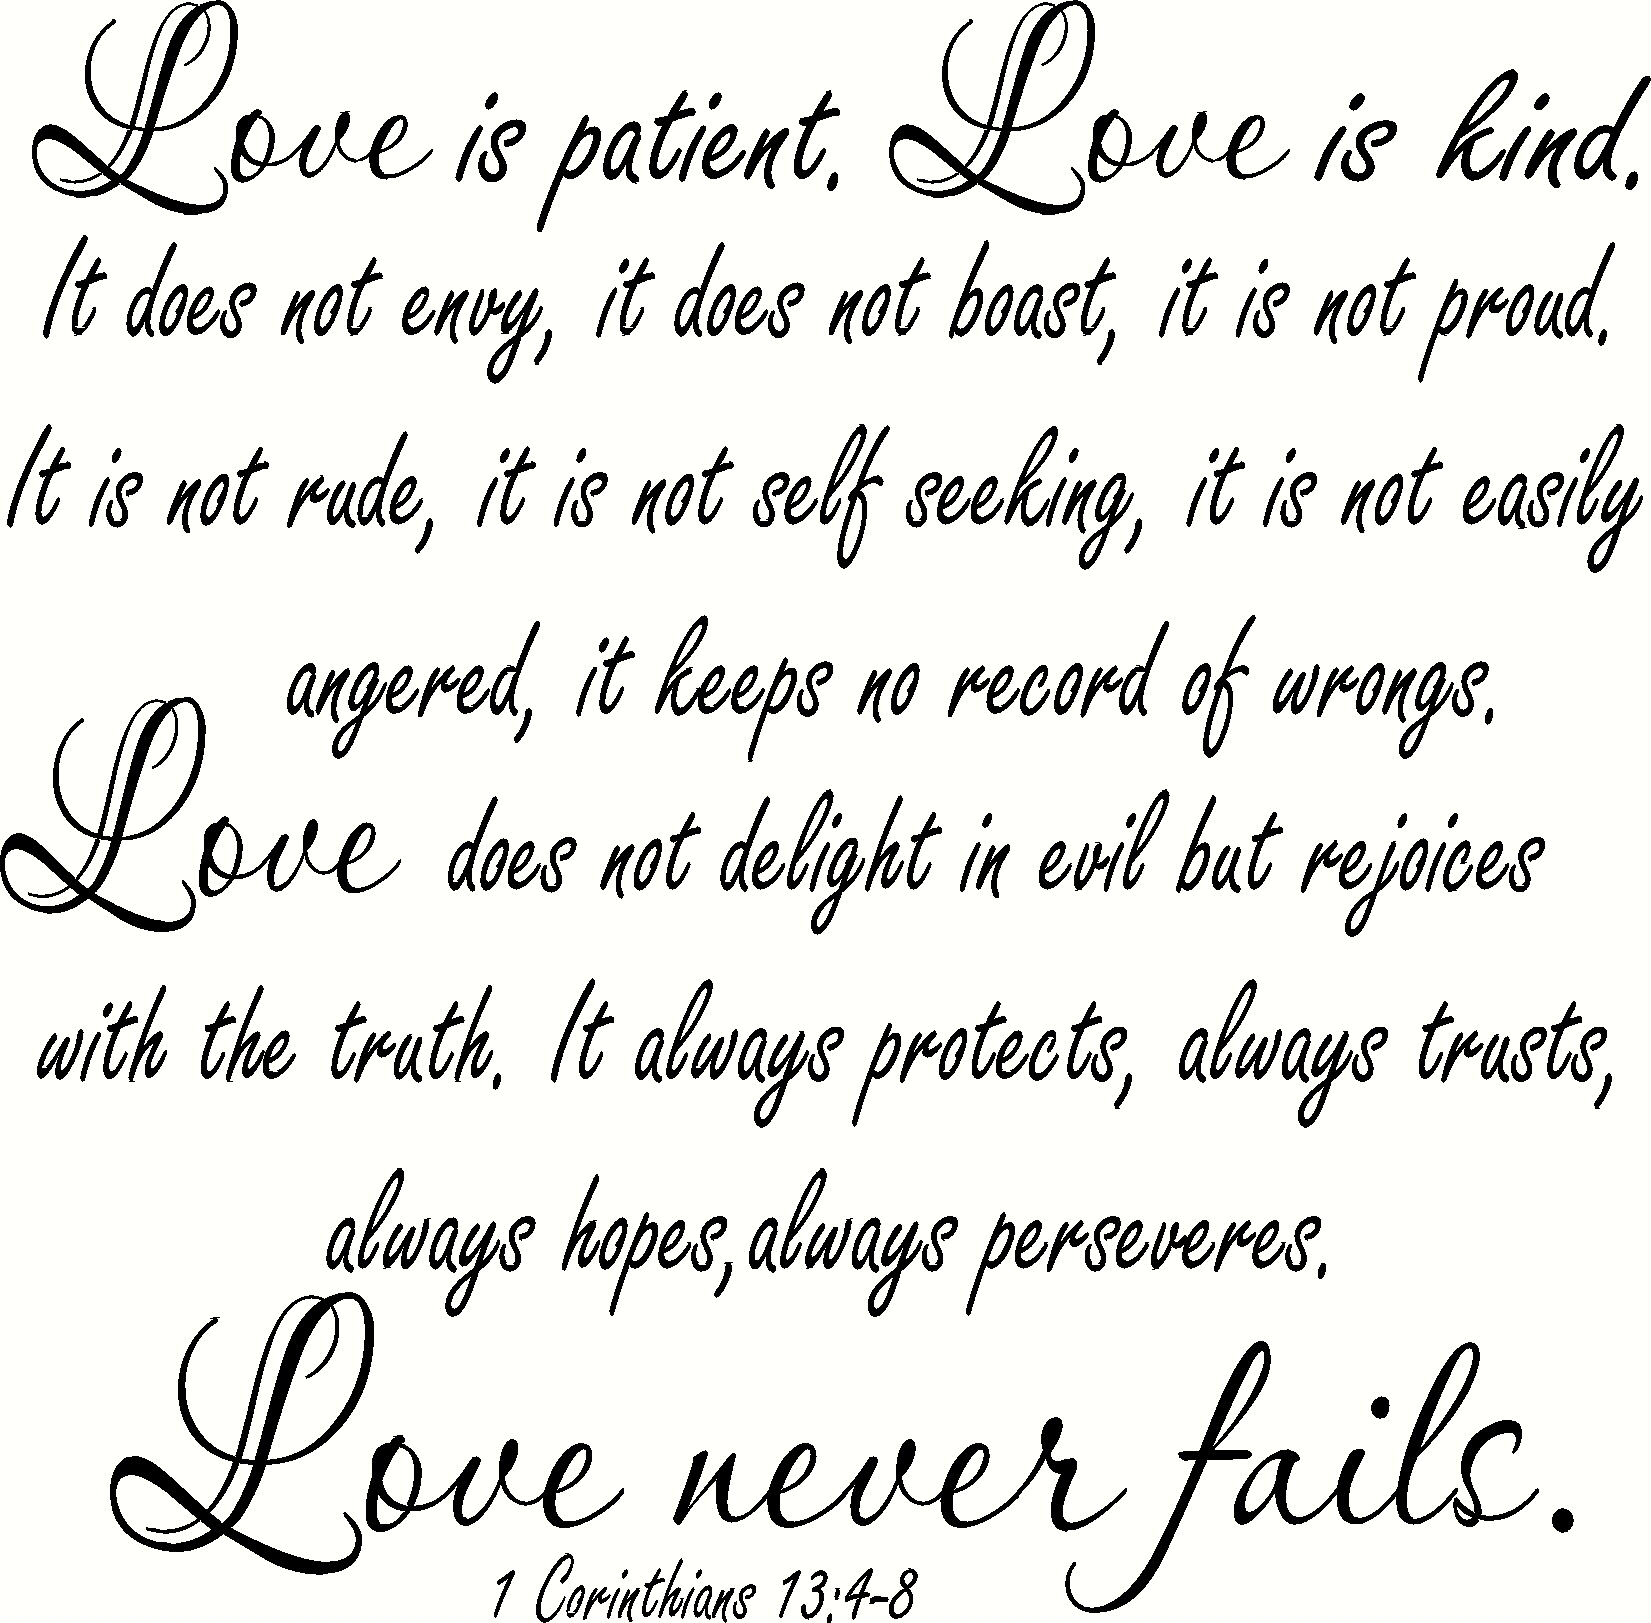 1 Corinthians 13:4-8 Bible Verse Wall Quote